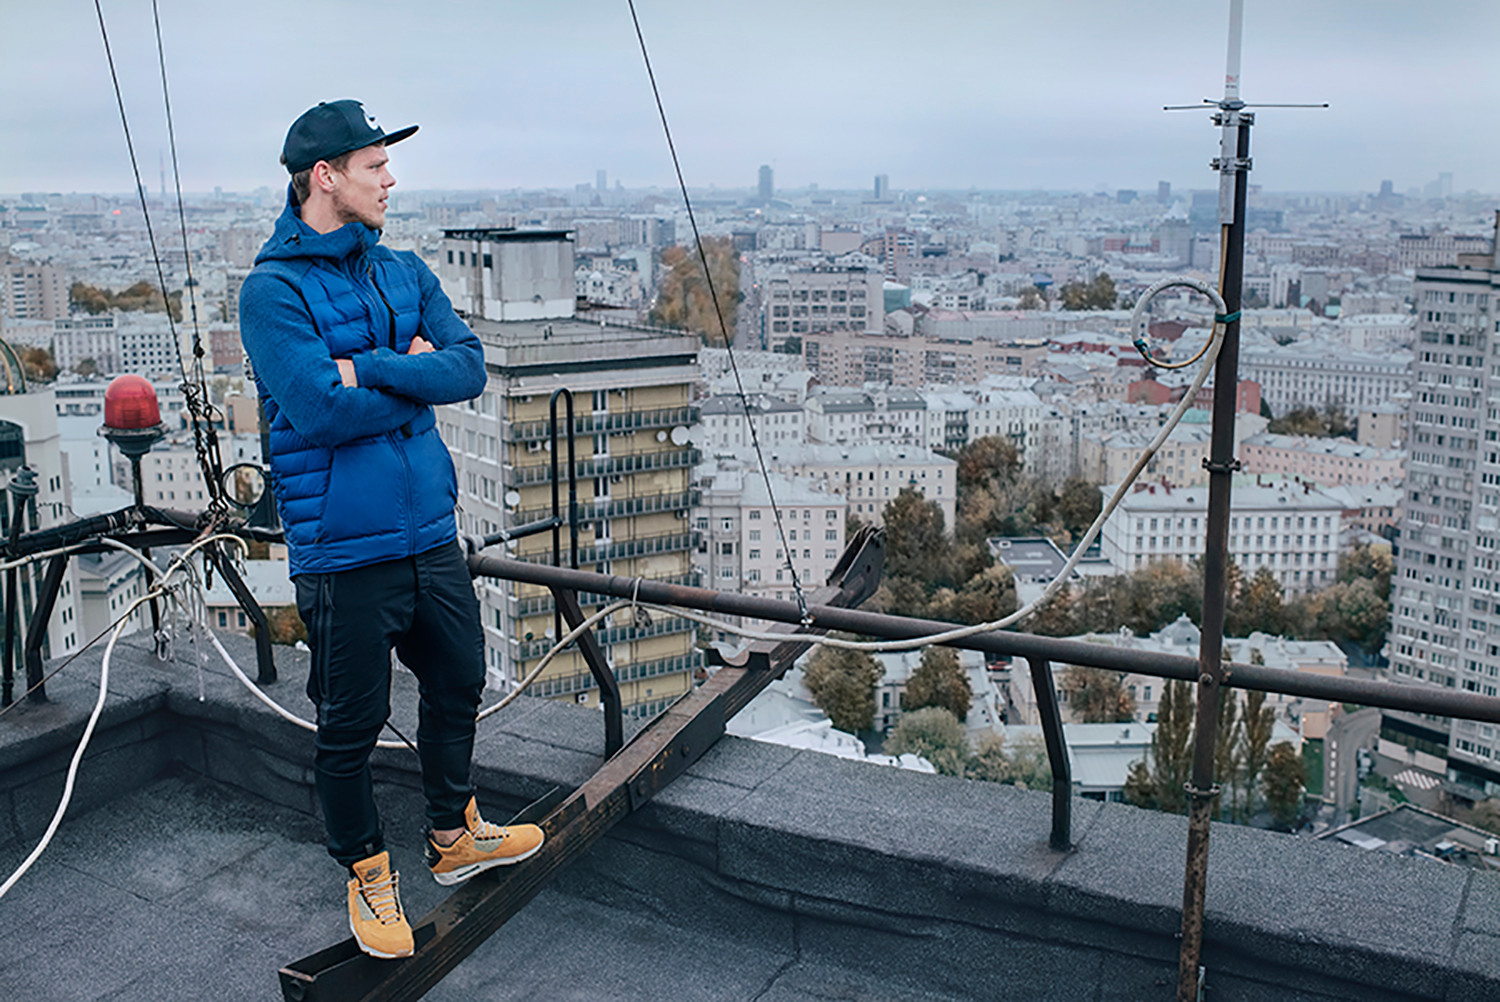 85374938c2a1 Nike Sneakerboots 2015 Fall Winter Moscow Event